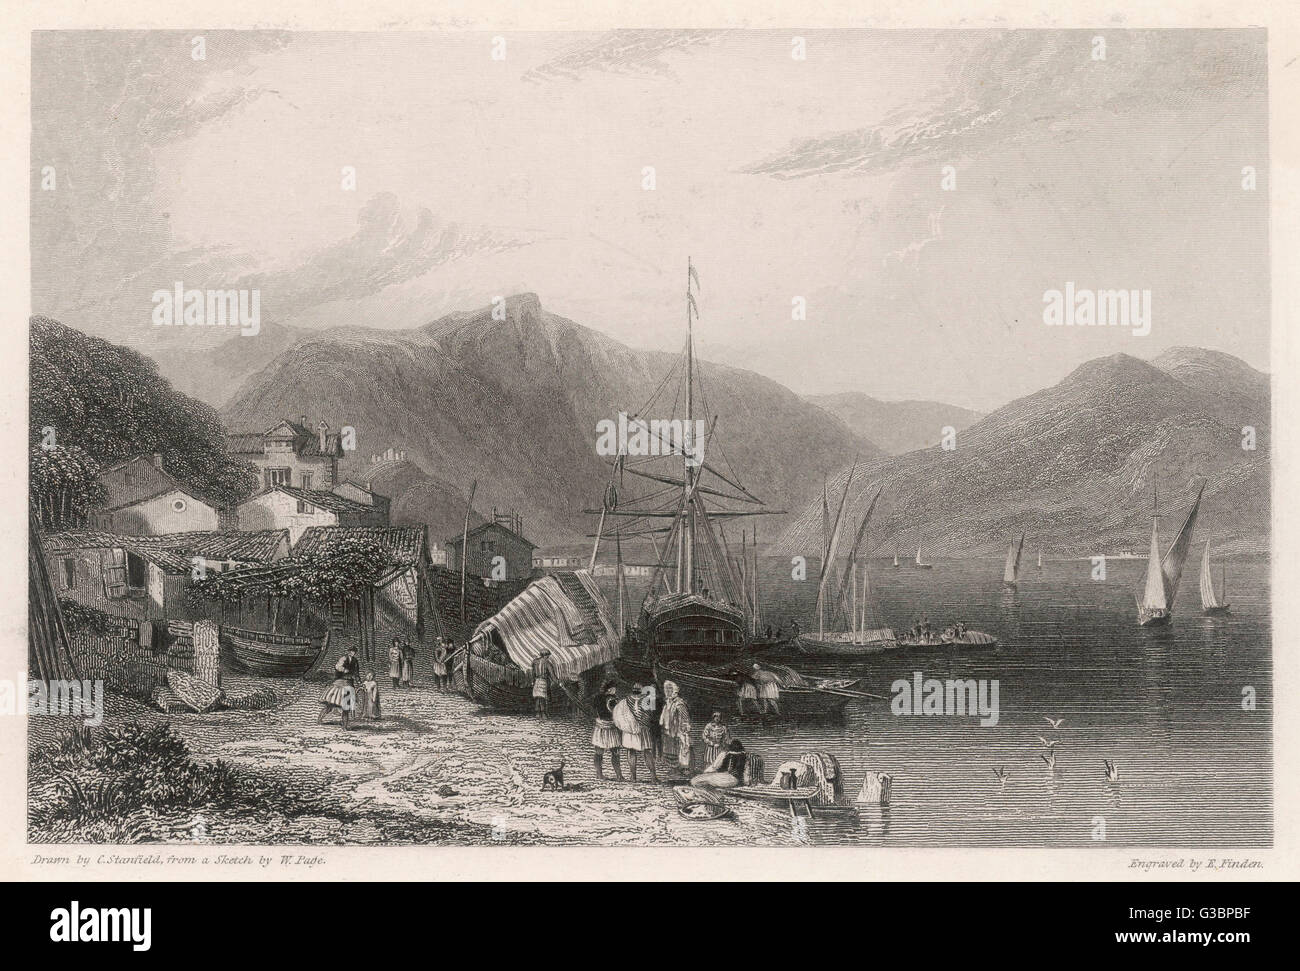 Ithaca, in the Ionian Sea         Date: 19th century - Stock Image